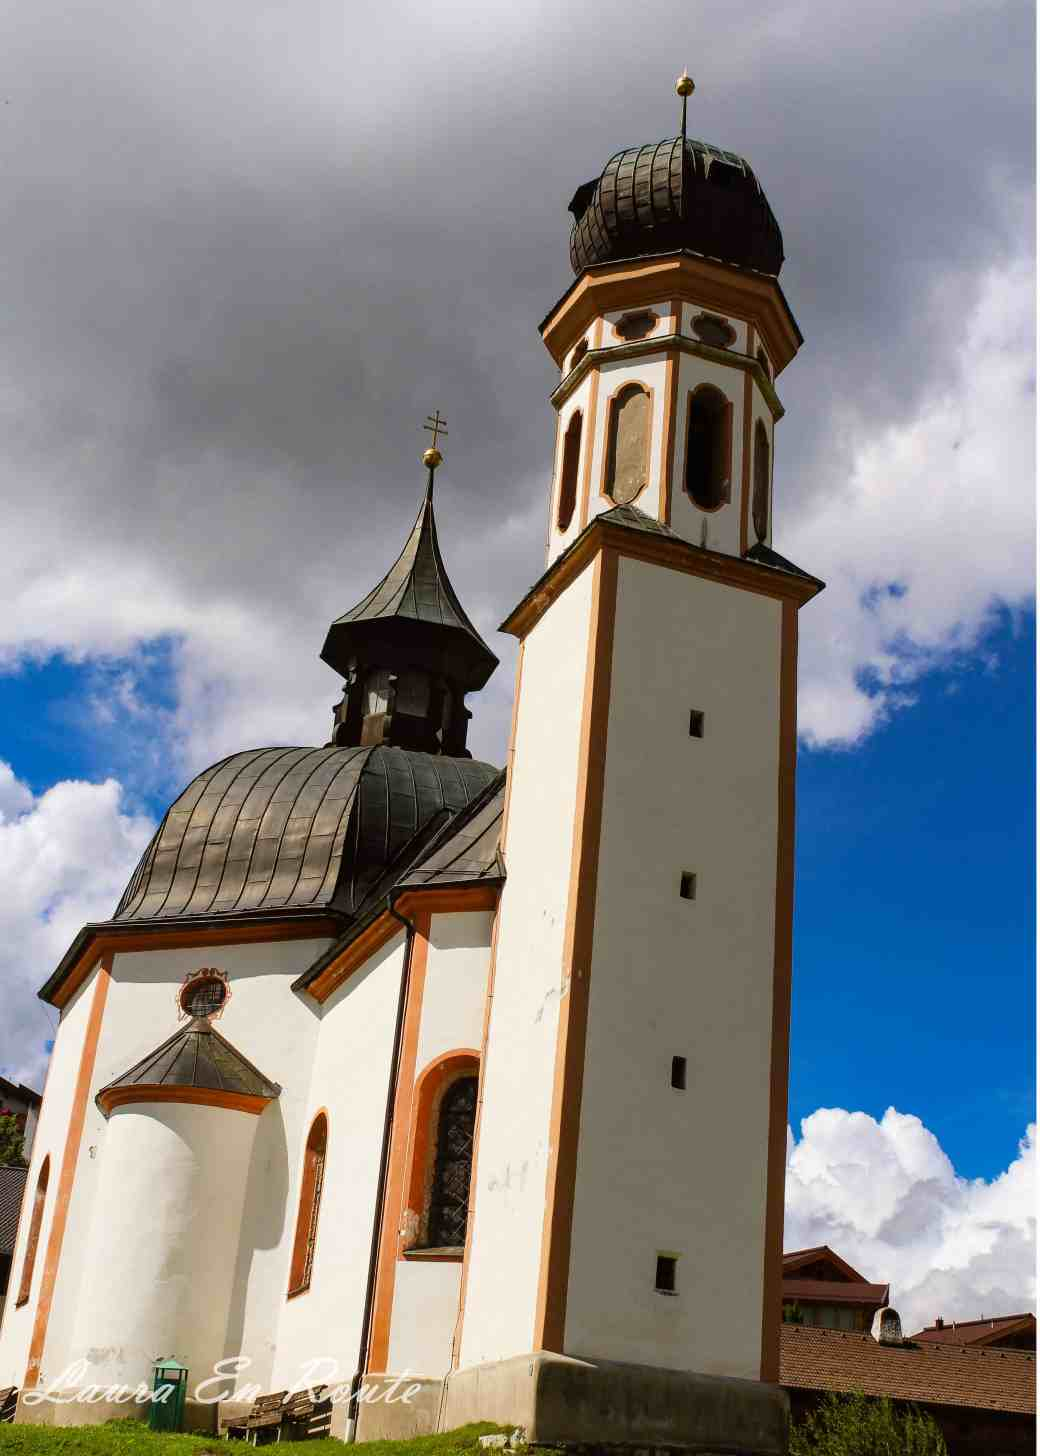 Parish Church of St. Oswald in Seefeld, Austria